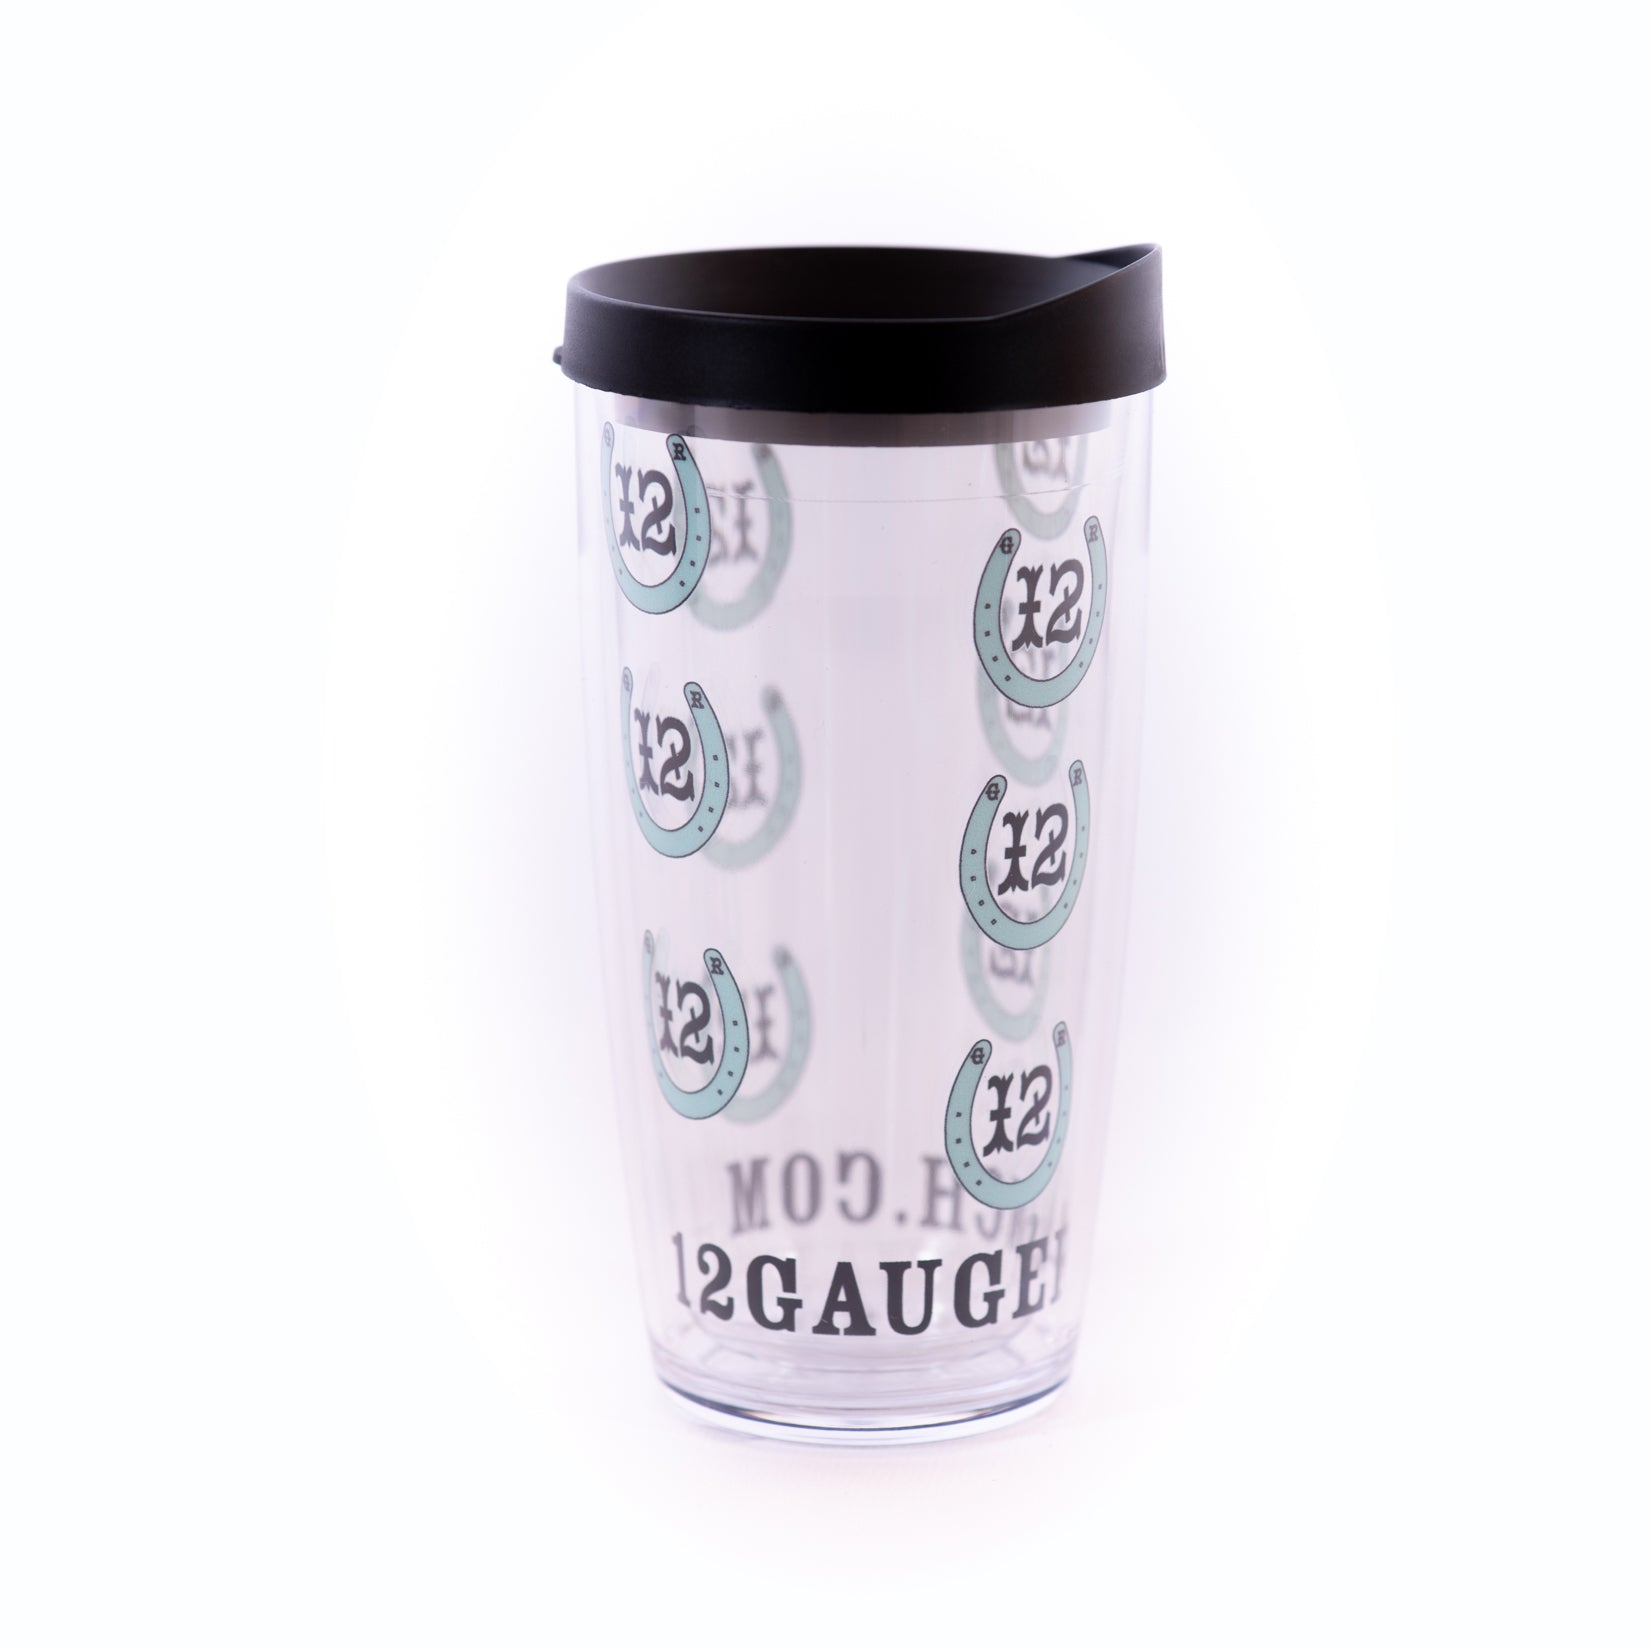 12 Gauge Teal Horseshoes 16oz Insulated Covo Cup, Accessories, 12 Gauge Ranch, 12 Gauge Ranch 12 Gauge Ranch